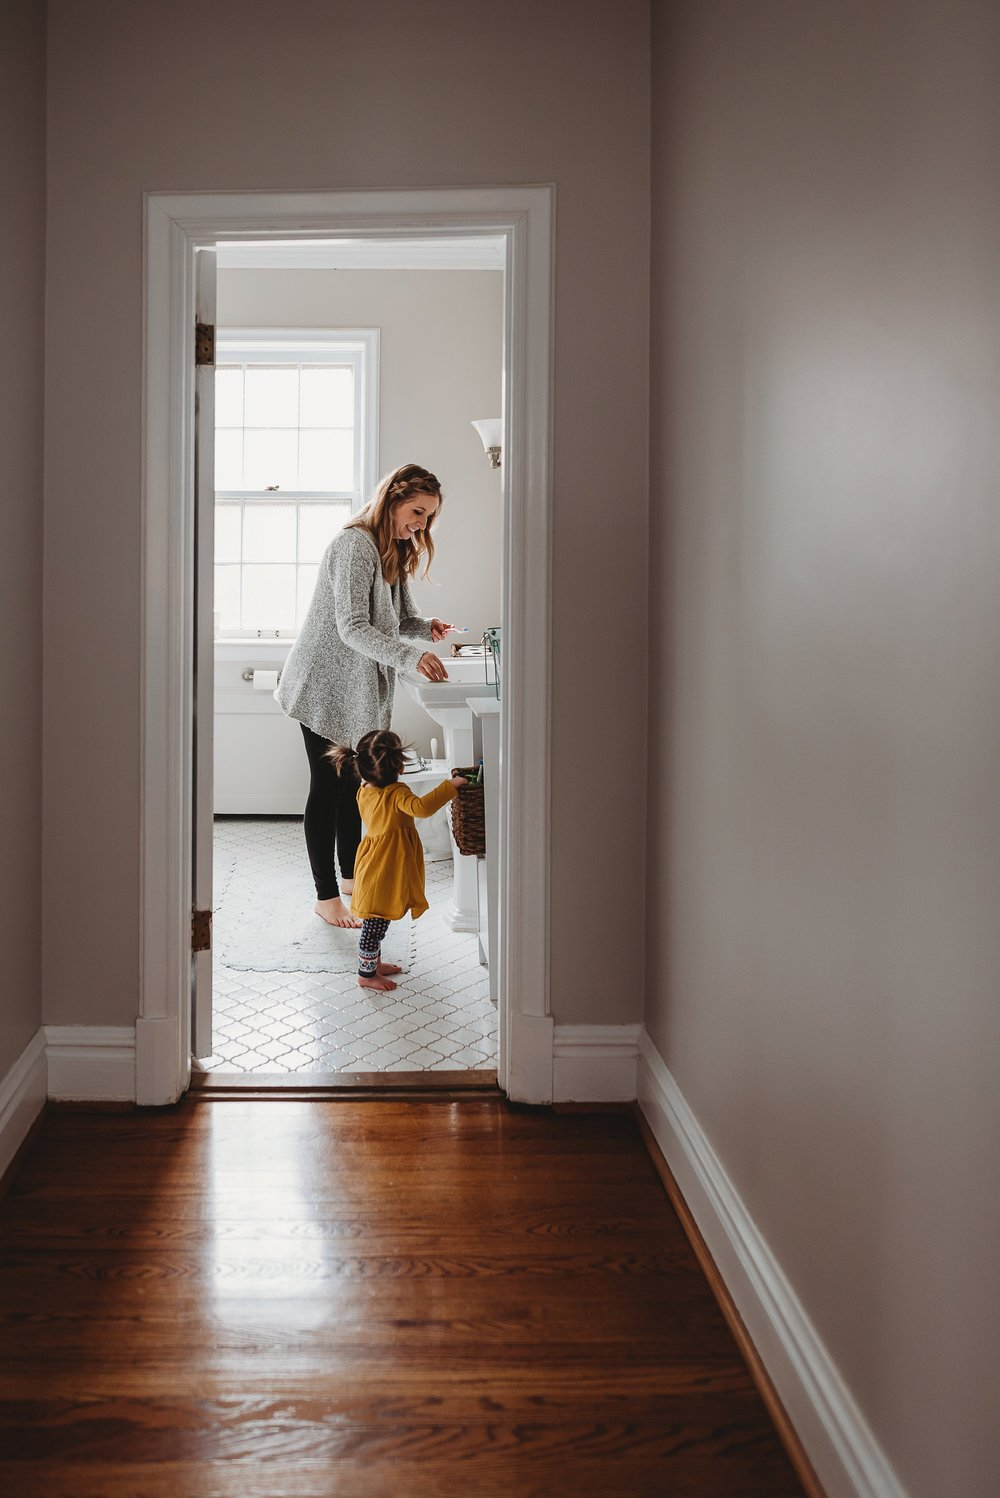 mom in bathroom {St louis family photography}